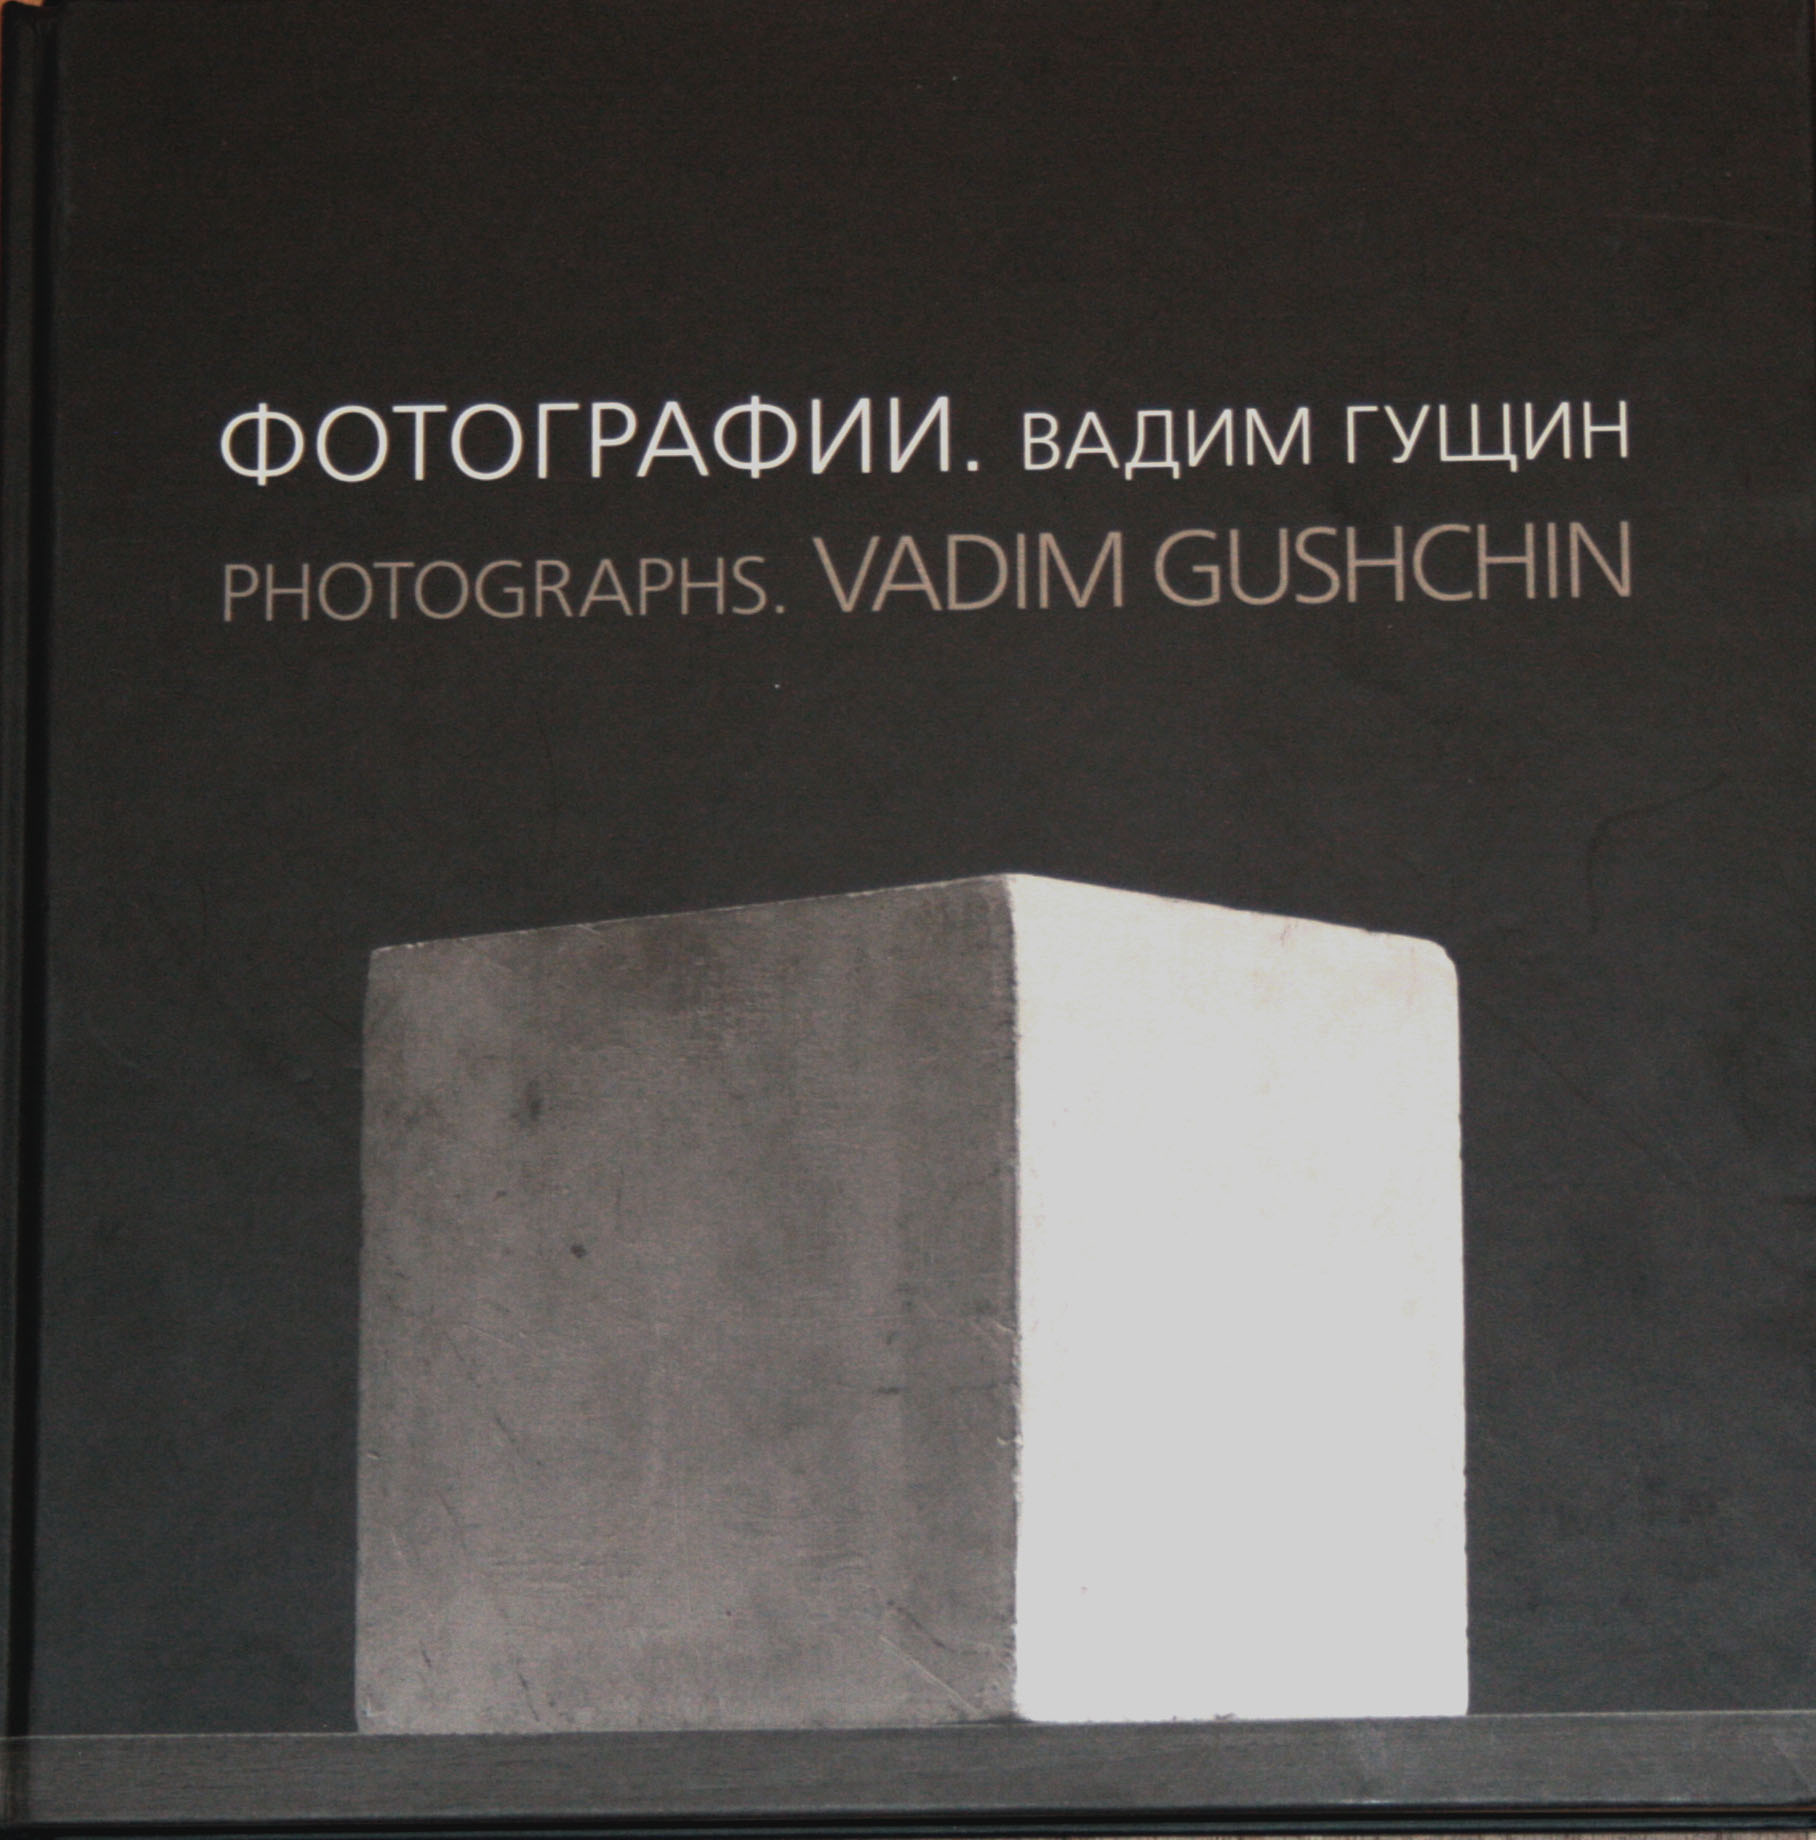 Photographs | Vadim Gushchin